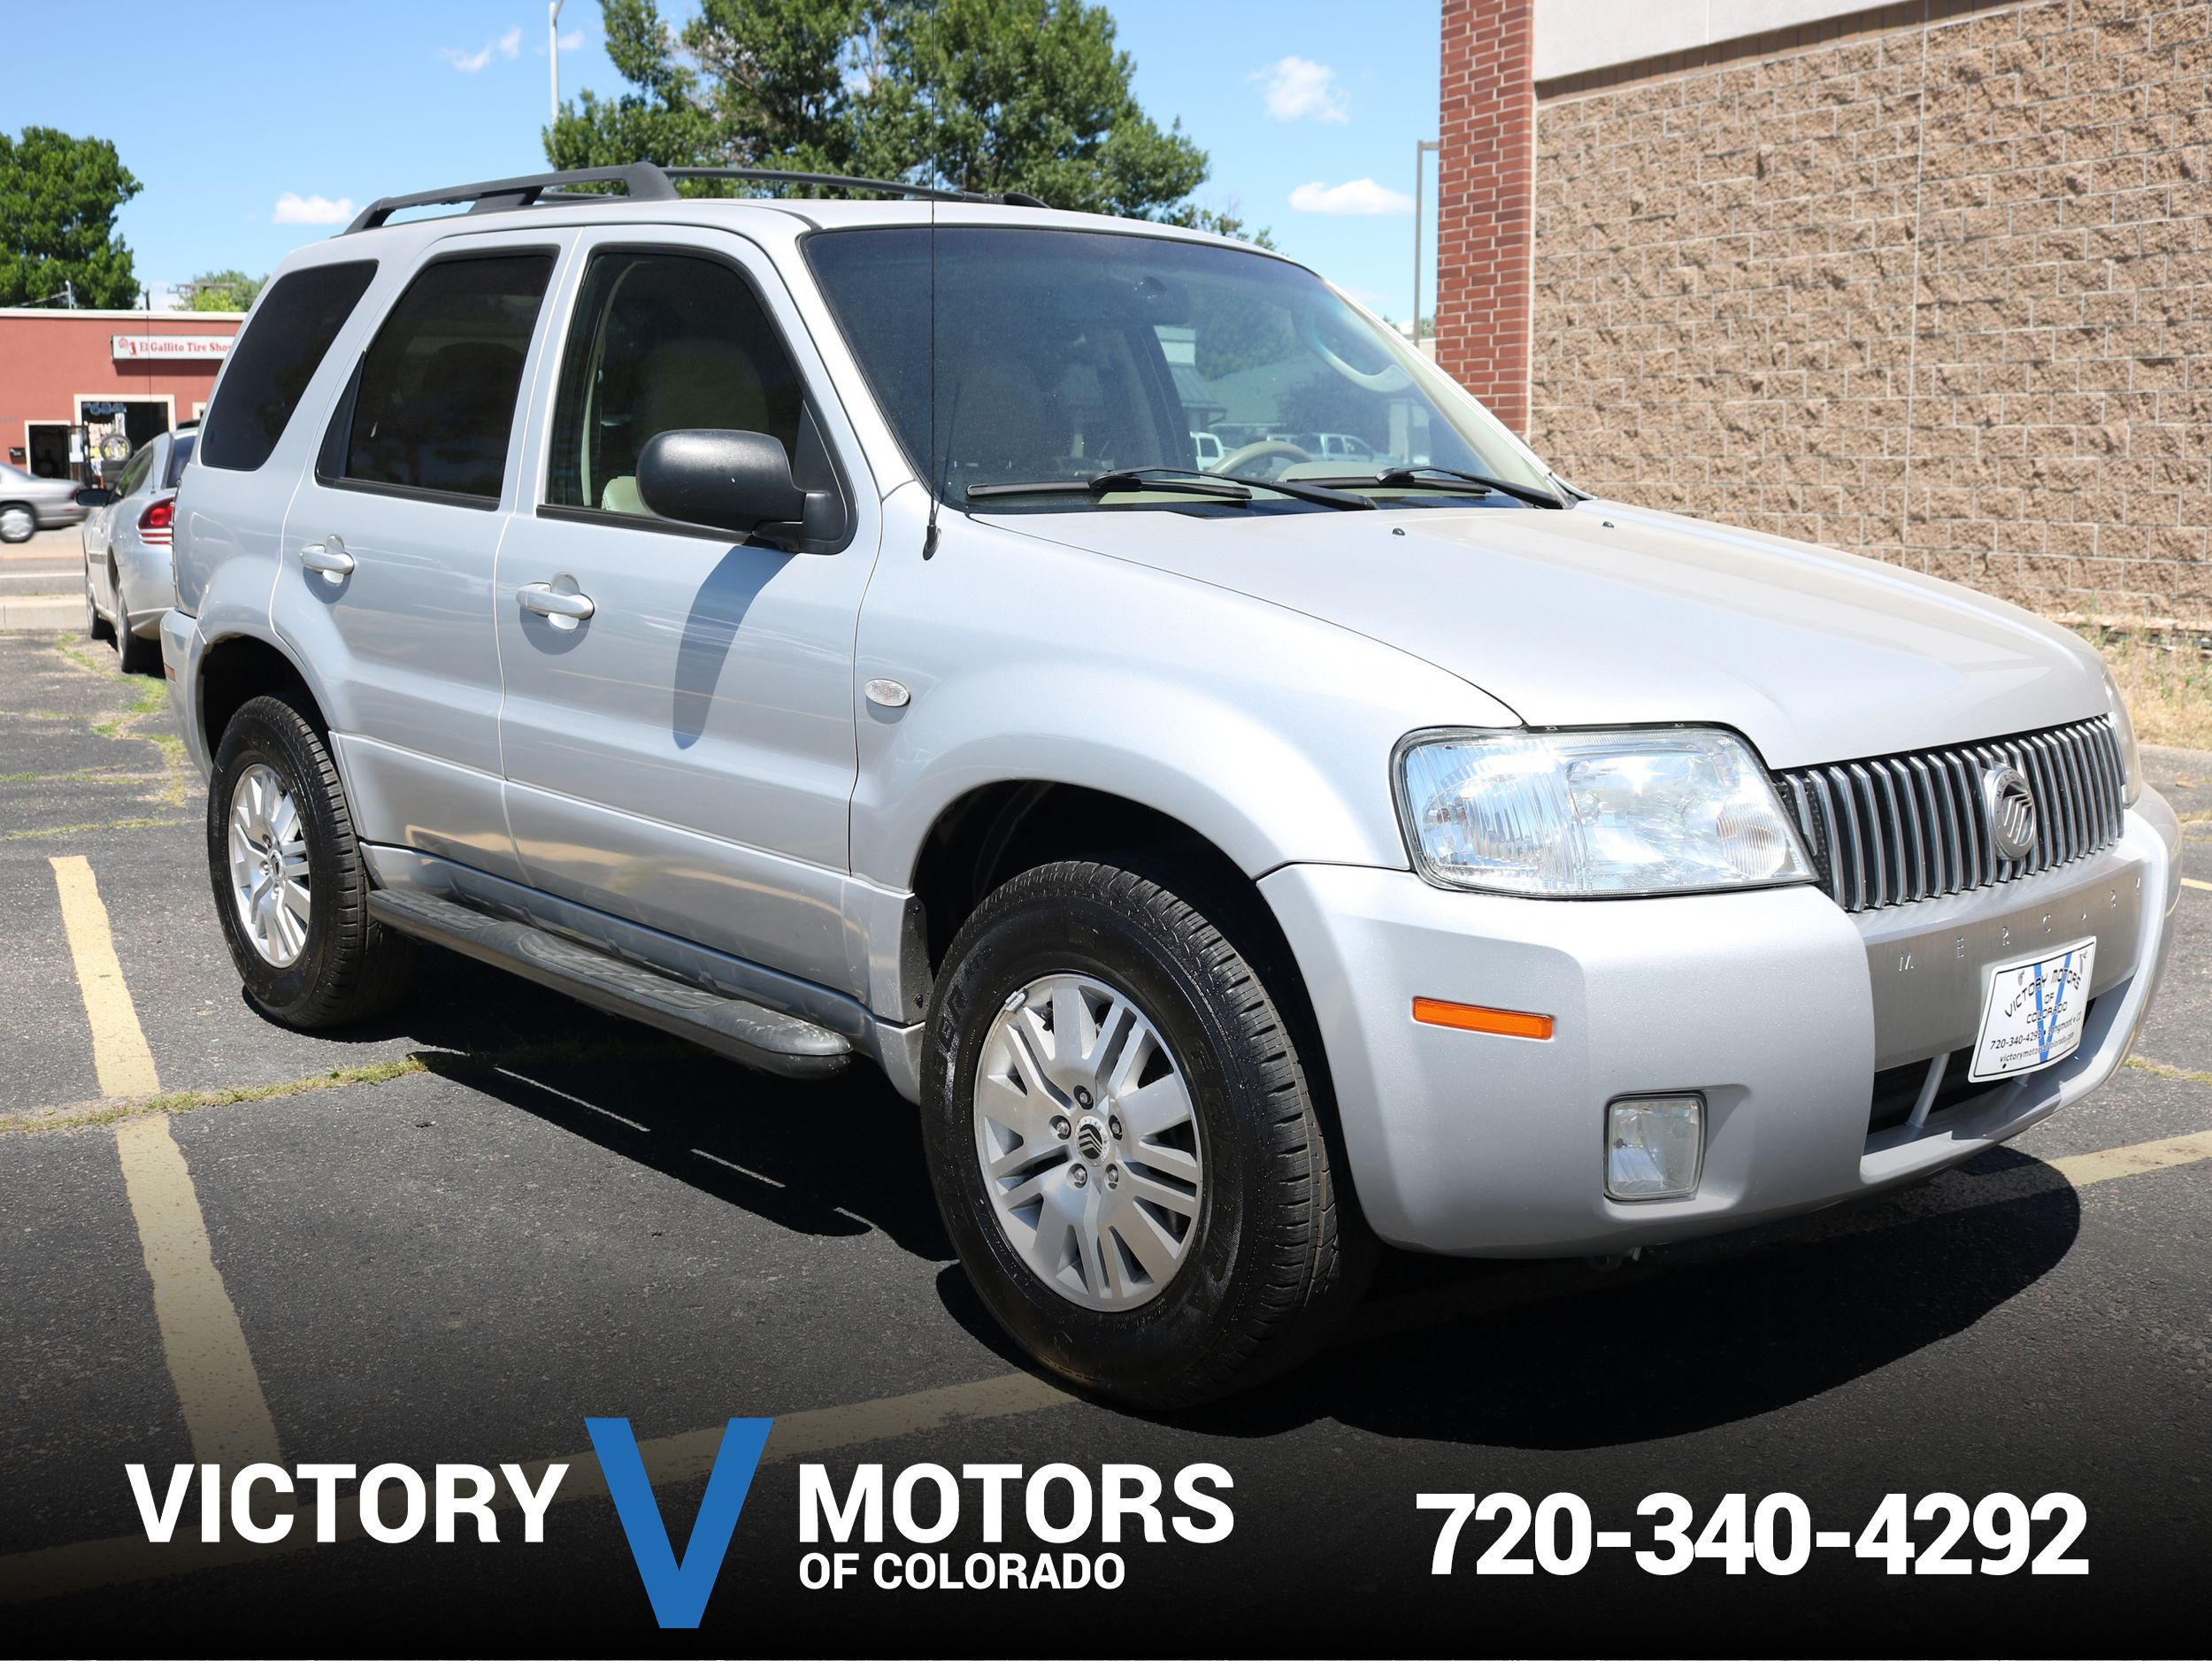 2007 mercury mariner premier victory motors of colorado rh victorymotorsofcolorado com 2007 mercury mariner owner's manual free 2010 mercury mariner owners manual